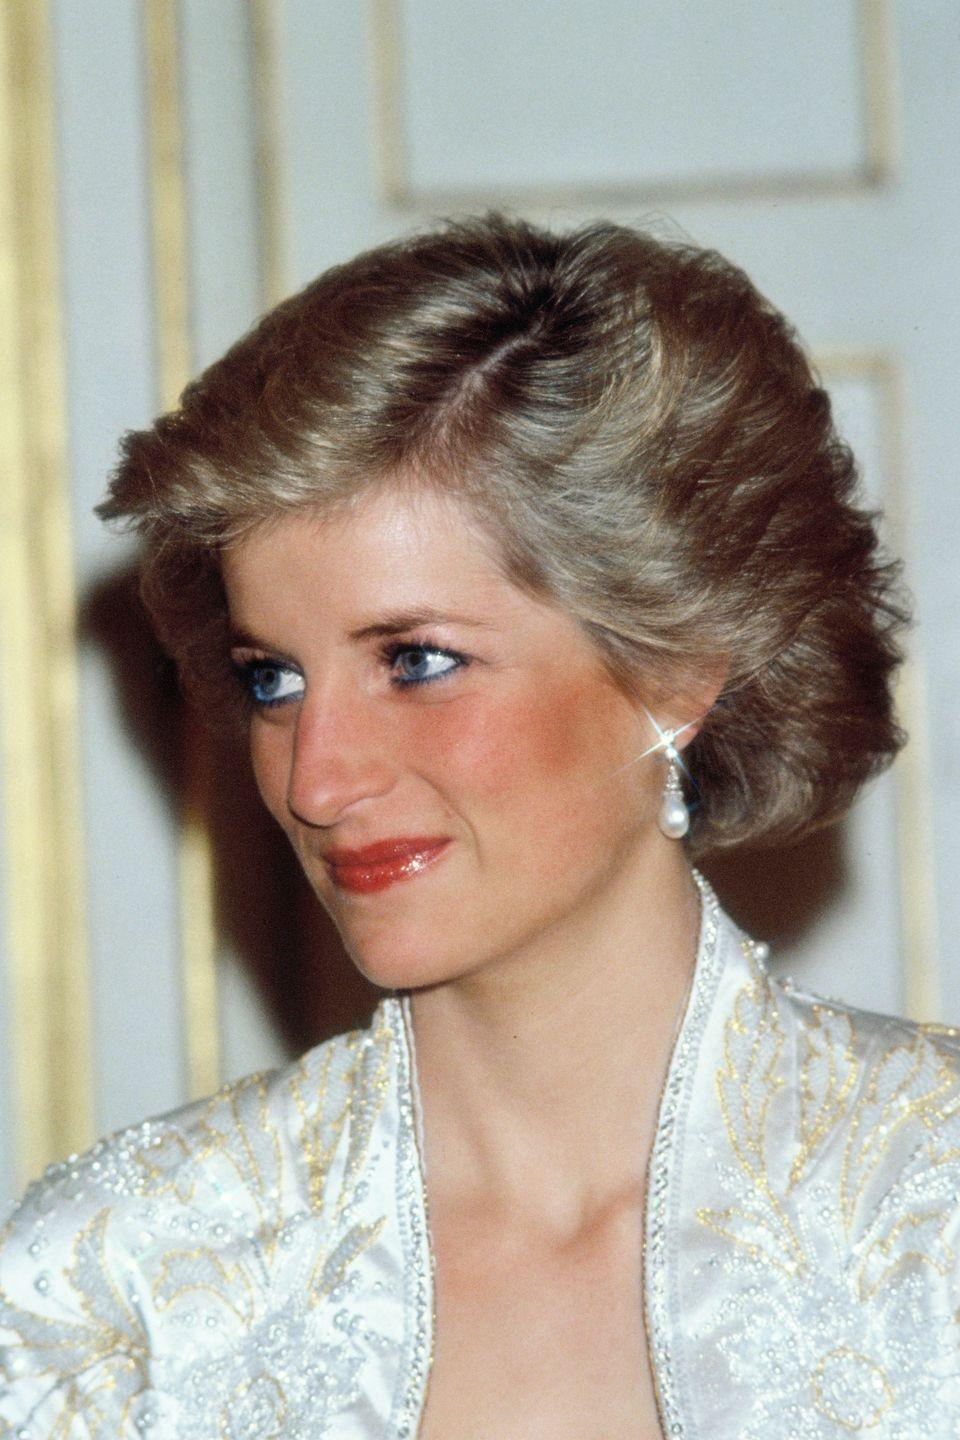 """<p>Princess Diana didn't just swipe the brush and go. """"I always taught her to make sure — when applying <span class=""""redactor-unlink"""">mascara</span> by herself - that she covered the roots of the lashes too,"""" Greenwell told <a href=""""http://www.stylist.co.uk/beauty/dianas-beauty-secrets"""" rel=""""nofollow noopener"""" target=""""_blank"""" data-ylk=""""slk:Stylist"""" class=""""link rapid-noclick-resp"""">Stylist</a>. Start in the corner of the eye and then work across before brushing it through, she <a href=""""http://www.dailymail.co.uk/femail/article-4243454/Diana-s-make-artist-Mary-Greenwell-recreates-look.html"""" rel=""""nofollow noopener"""" target=""""_blank"""" data-ylk=""""slk:advises"""" class=""""link rapid-noclick-resp"""">advises</a>.</p>"""